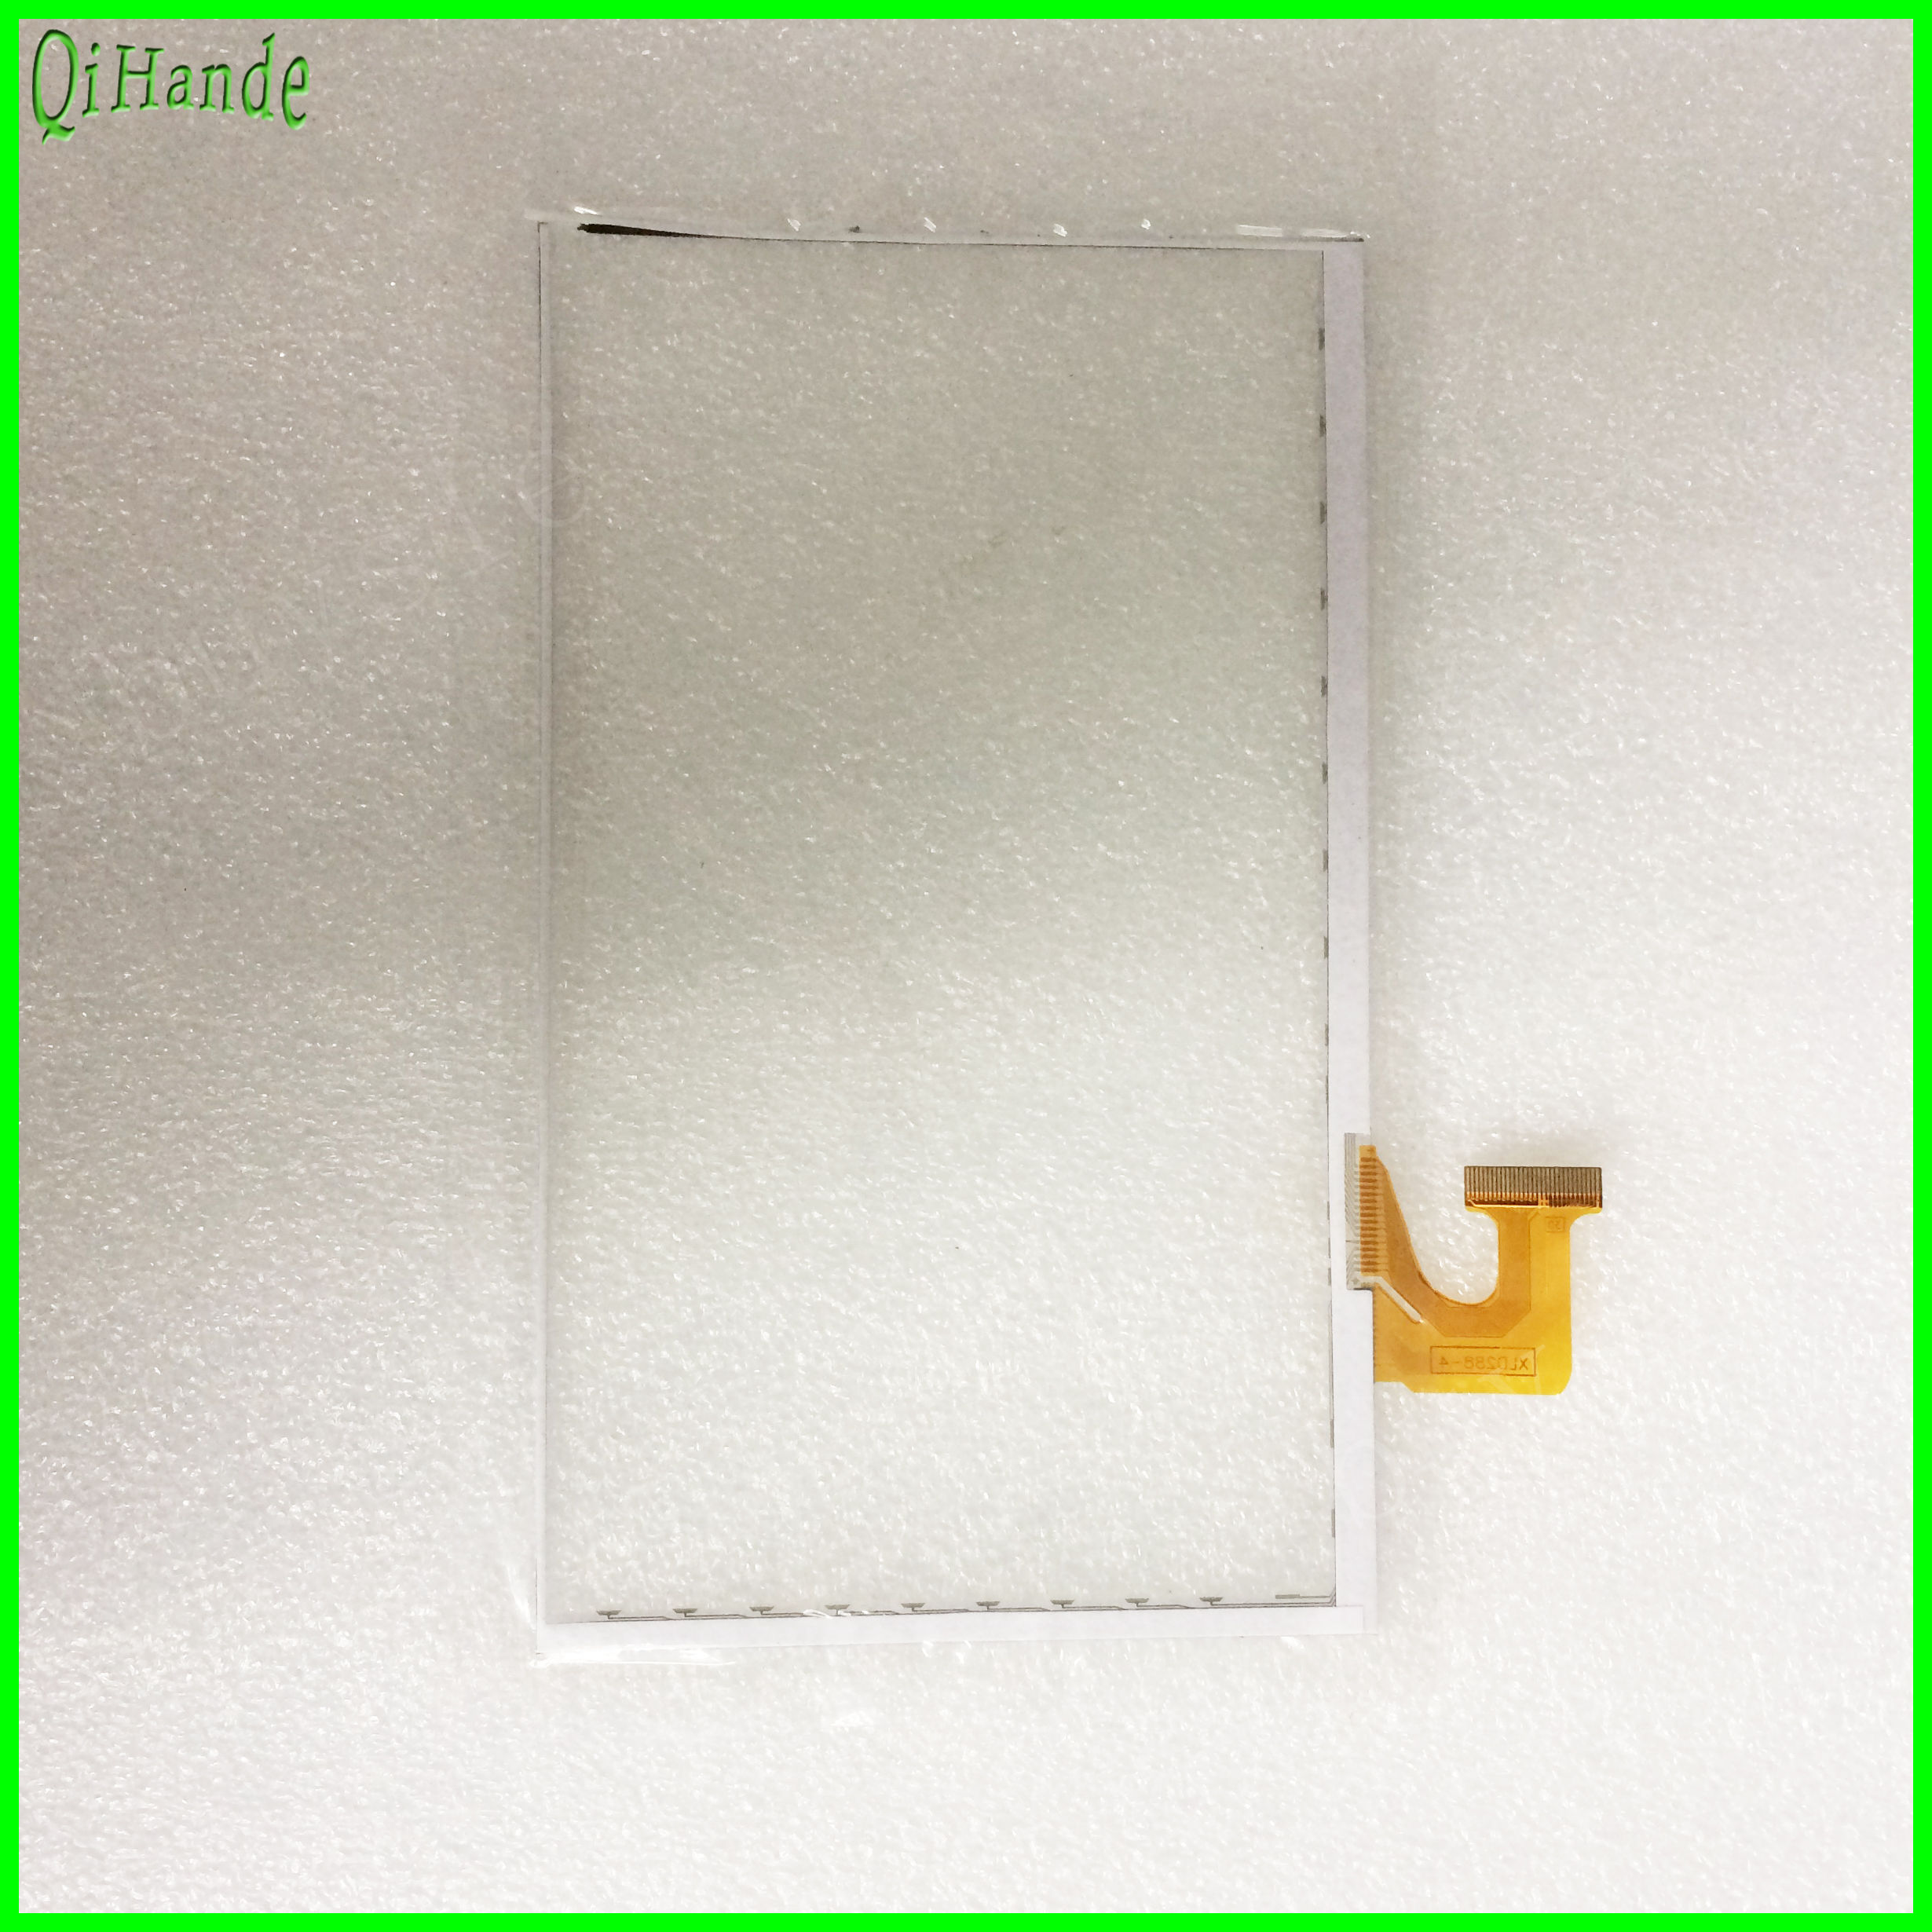 New For XLD288-4 Tablet Capacitive touch screen panel Digitizer Sensor Replacement Free ShippingNew For XLD288-4 Tablet Capacitive touch screen panel Digitizer Sensor Replacement Free Shipping